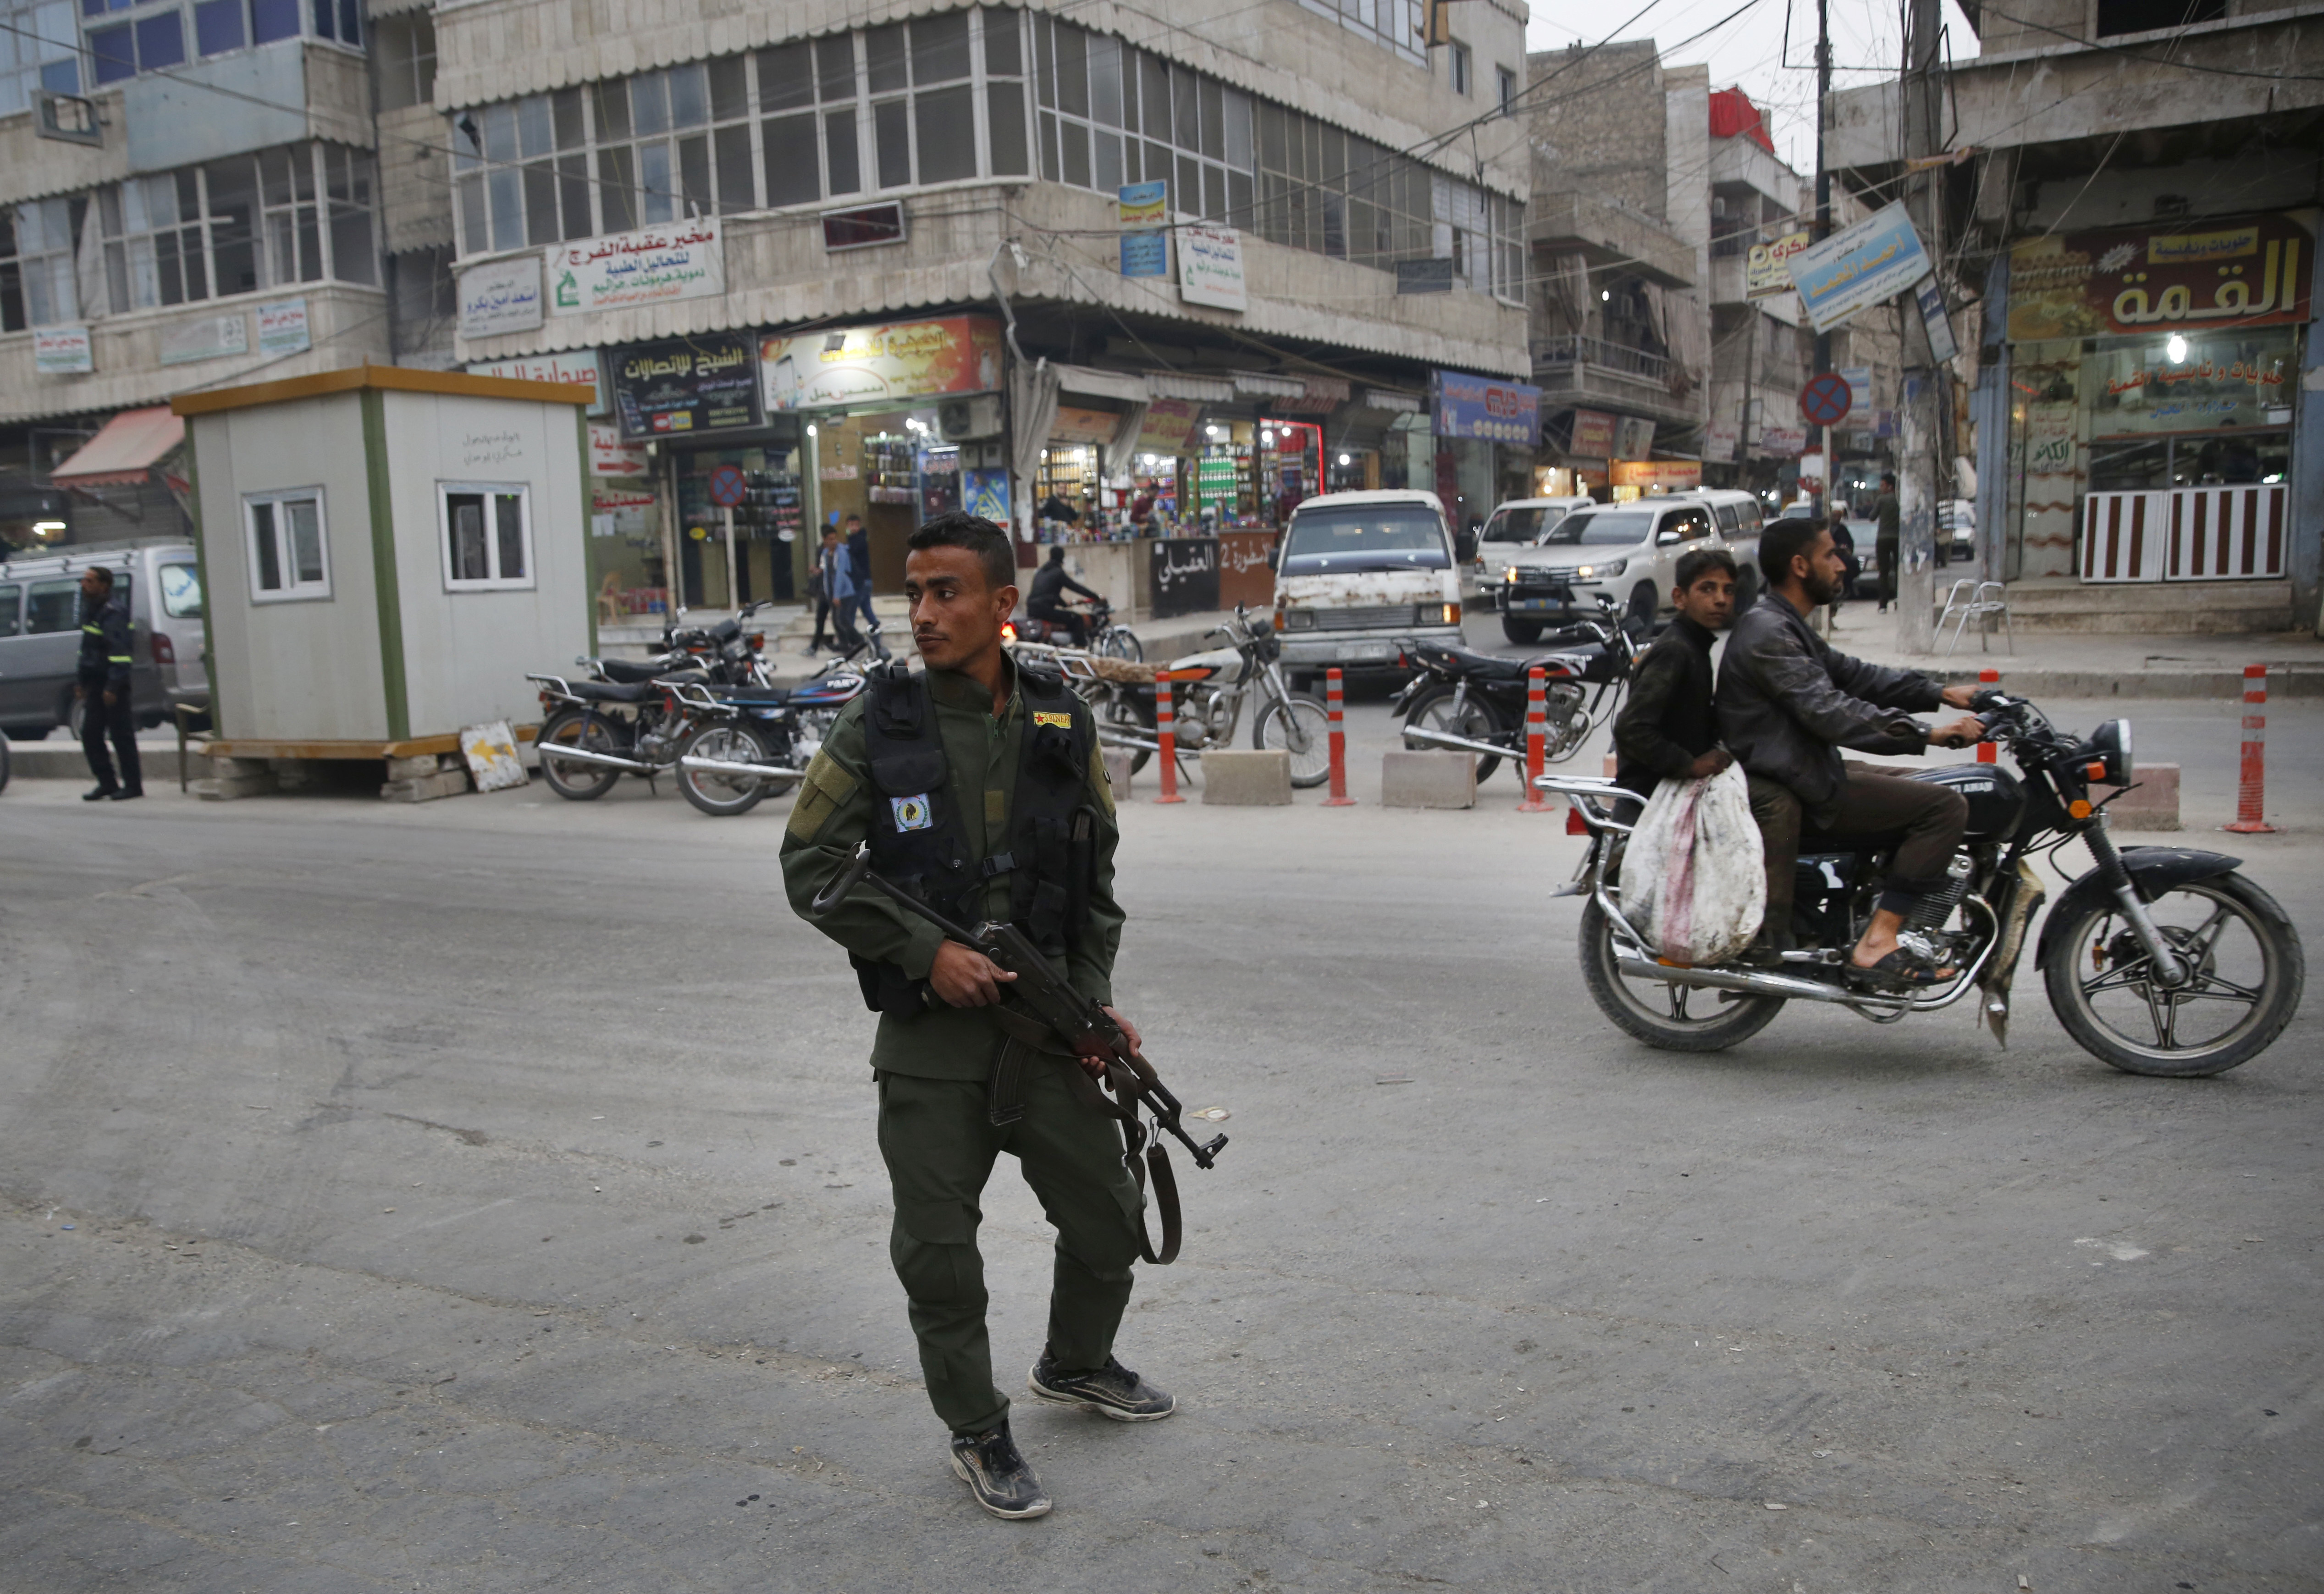 A member of the Kurdish internal security forces patrols a commercial street in Manbij, north Syria, March 28, 2018. Manbij, a mixed Arab and Kurdish town of nearly 400,000, was liberated from Islamic State militants in 2016 by the YPG fighters with